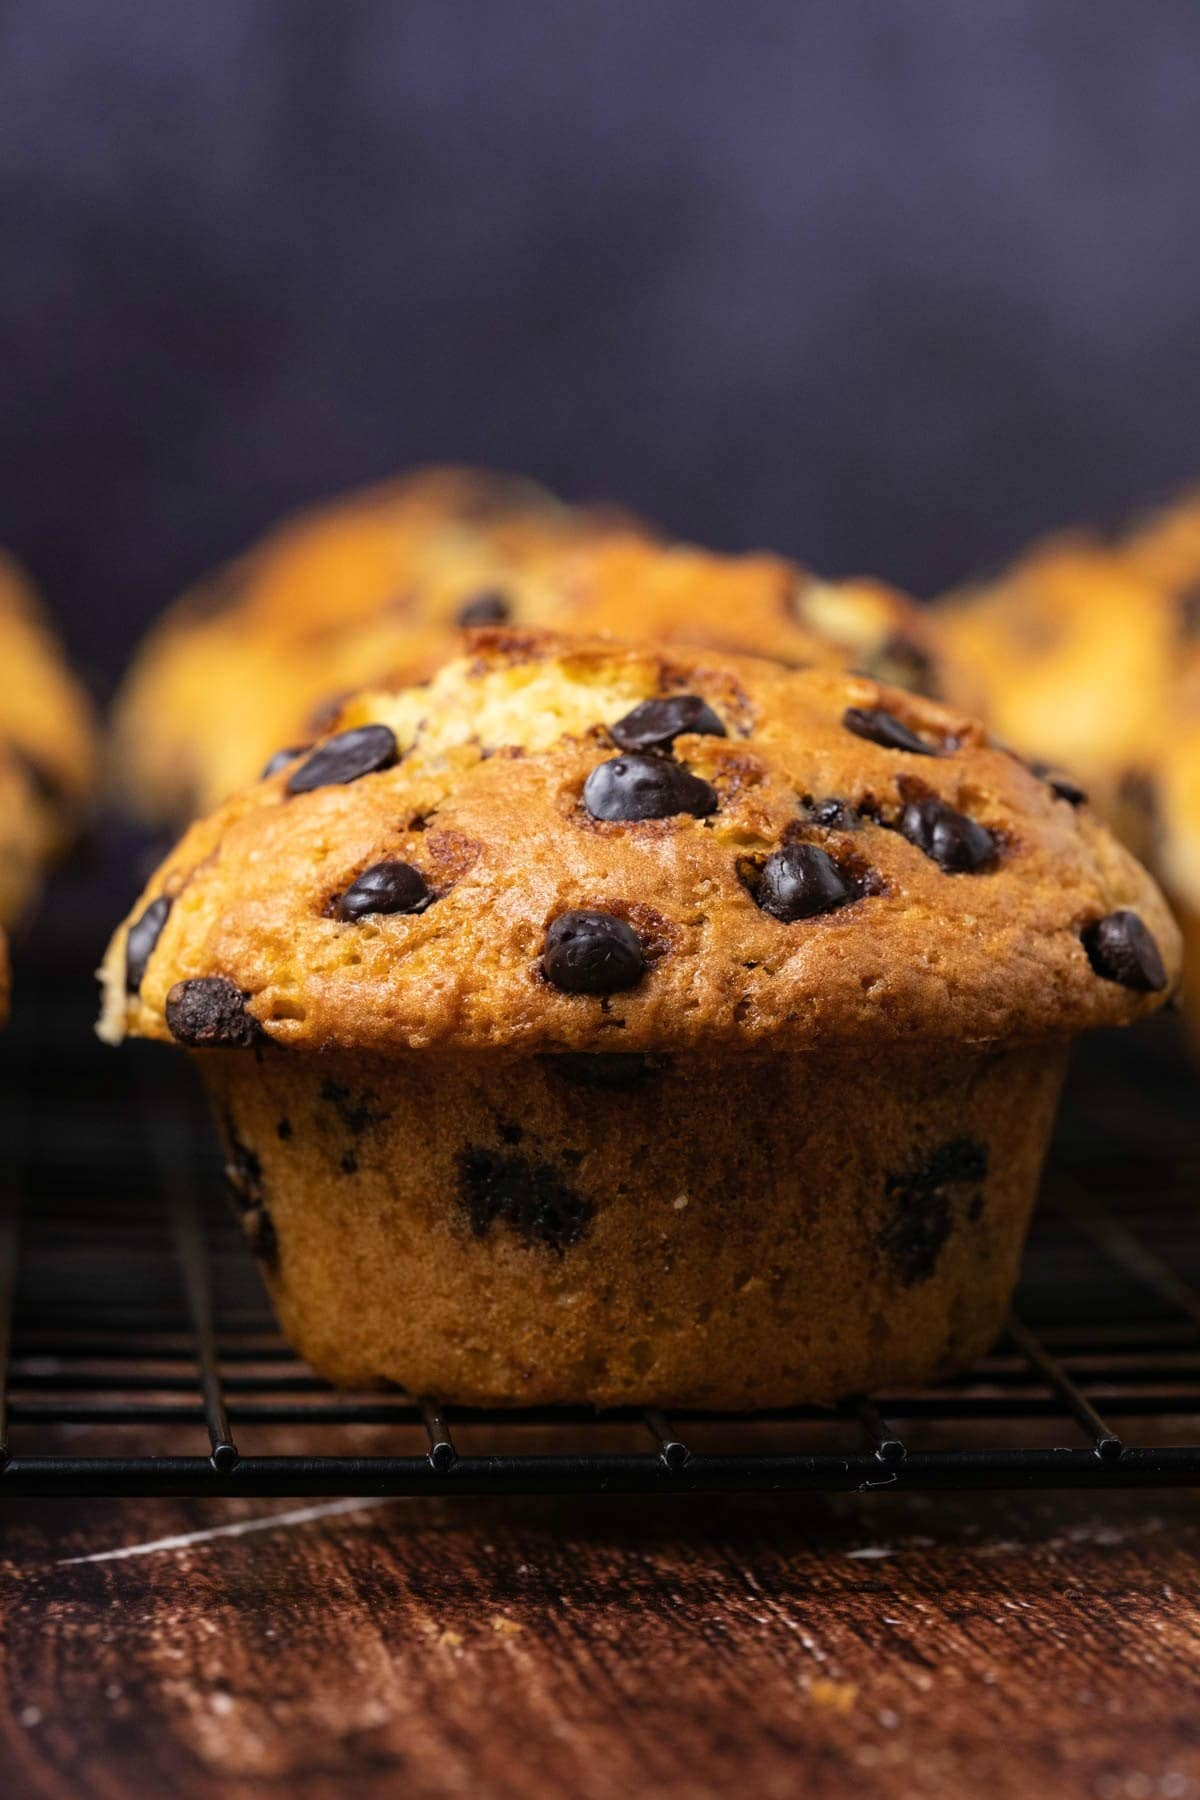 Chocolate chip muffins on a wire cooling rack.